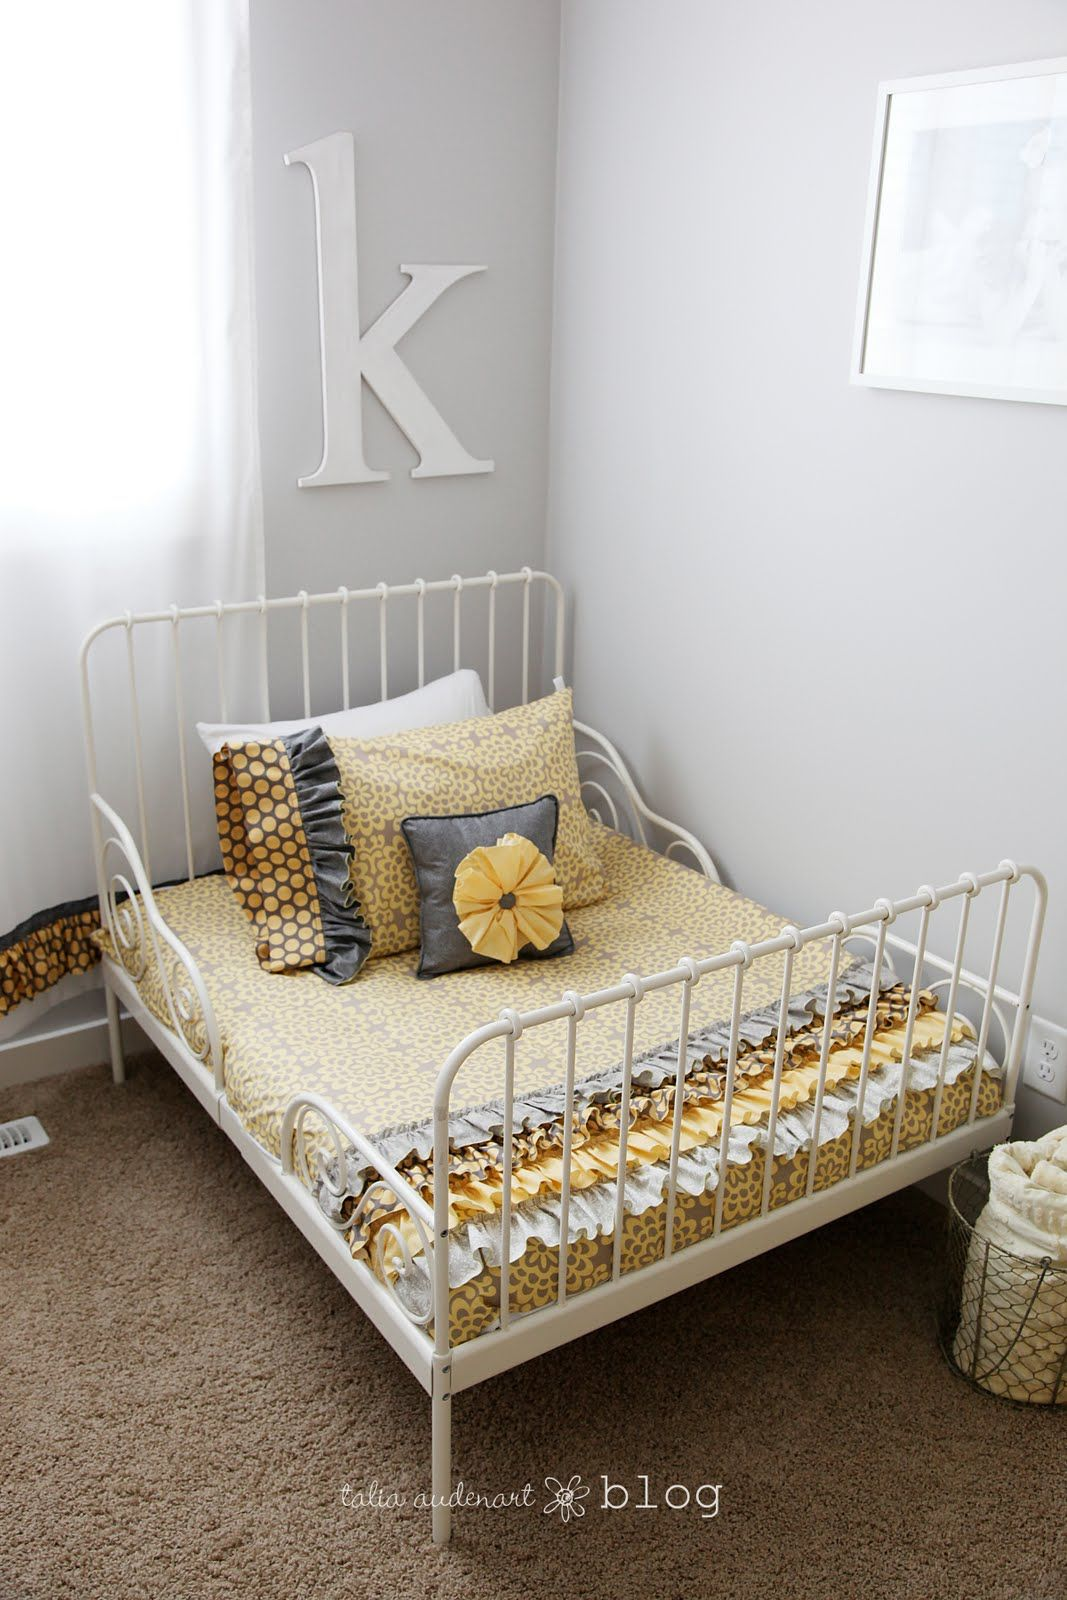 I Have My Eye On This Ikea Bed Wonder If It Would Be Hard To Keep Blankets Neat Looking Also Love The Ruffles